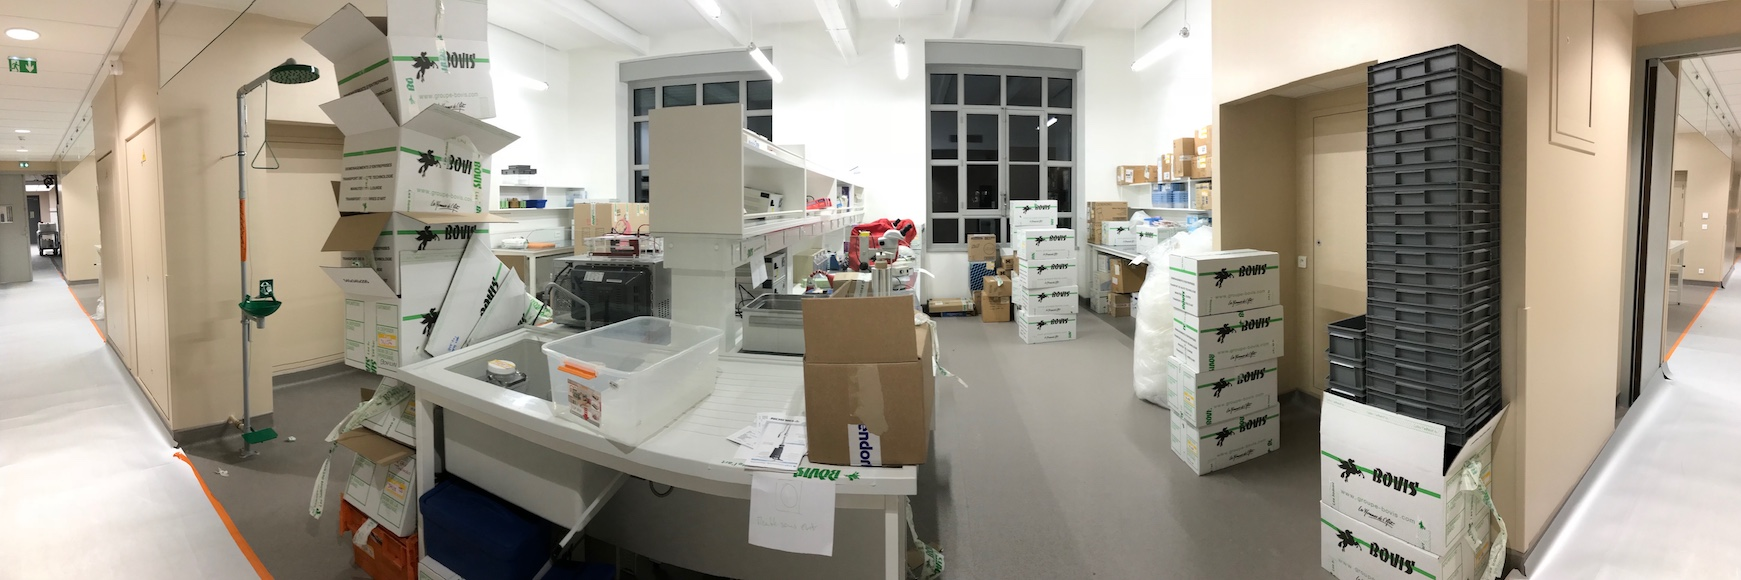 Fresh lab space